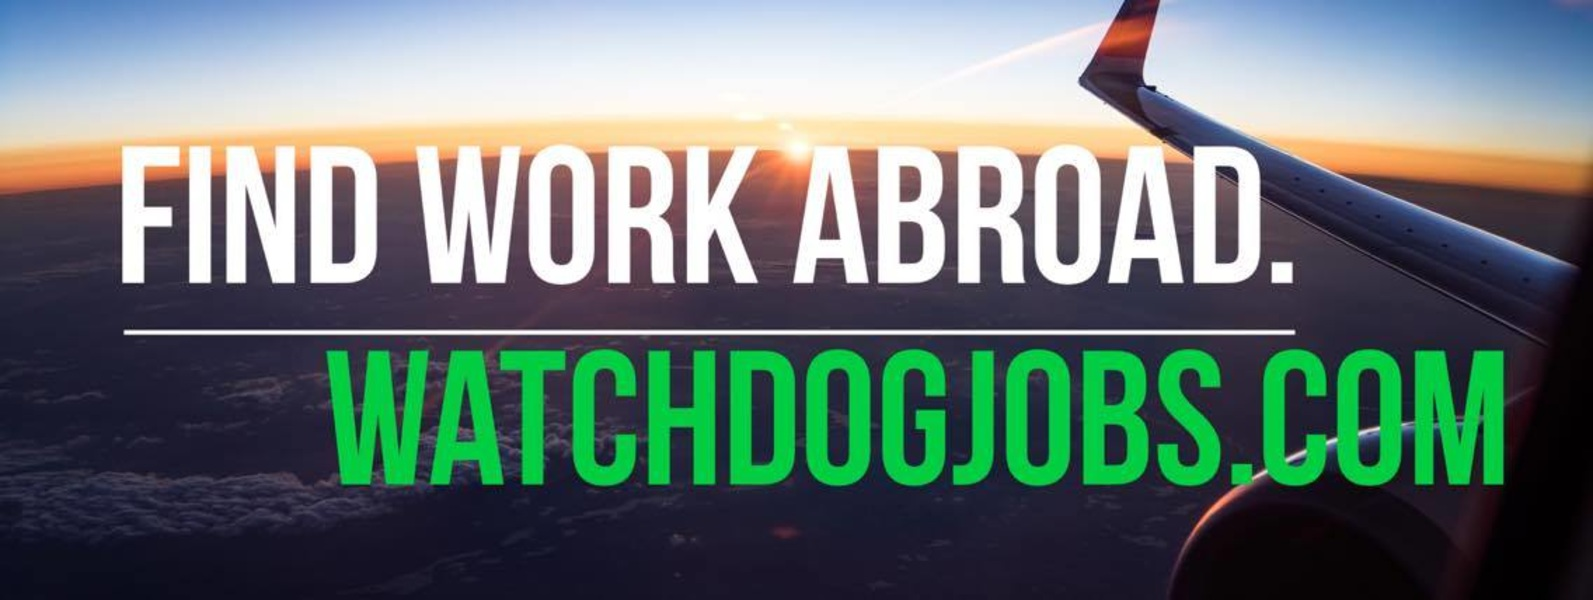 Watchdog Jobs Work Your Next Contract Watchdog Jobs